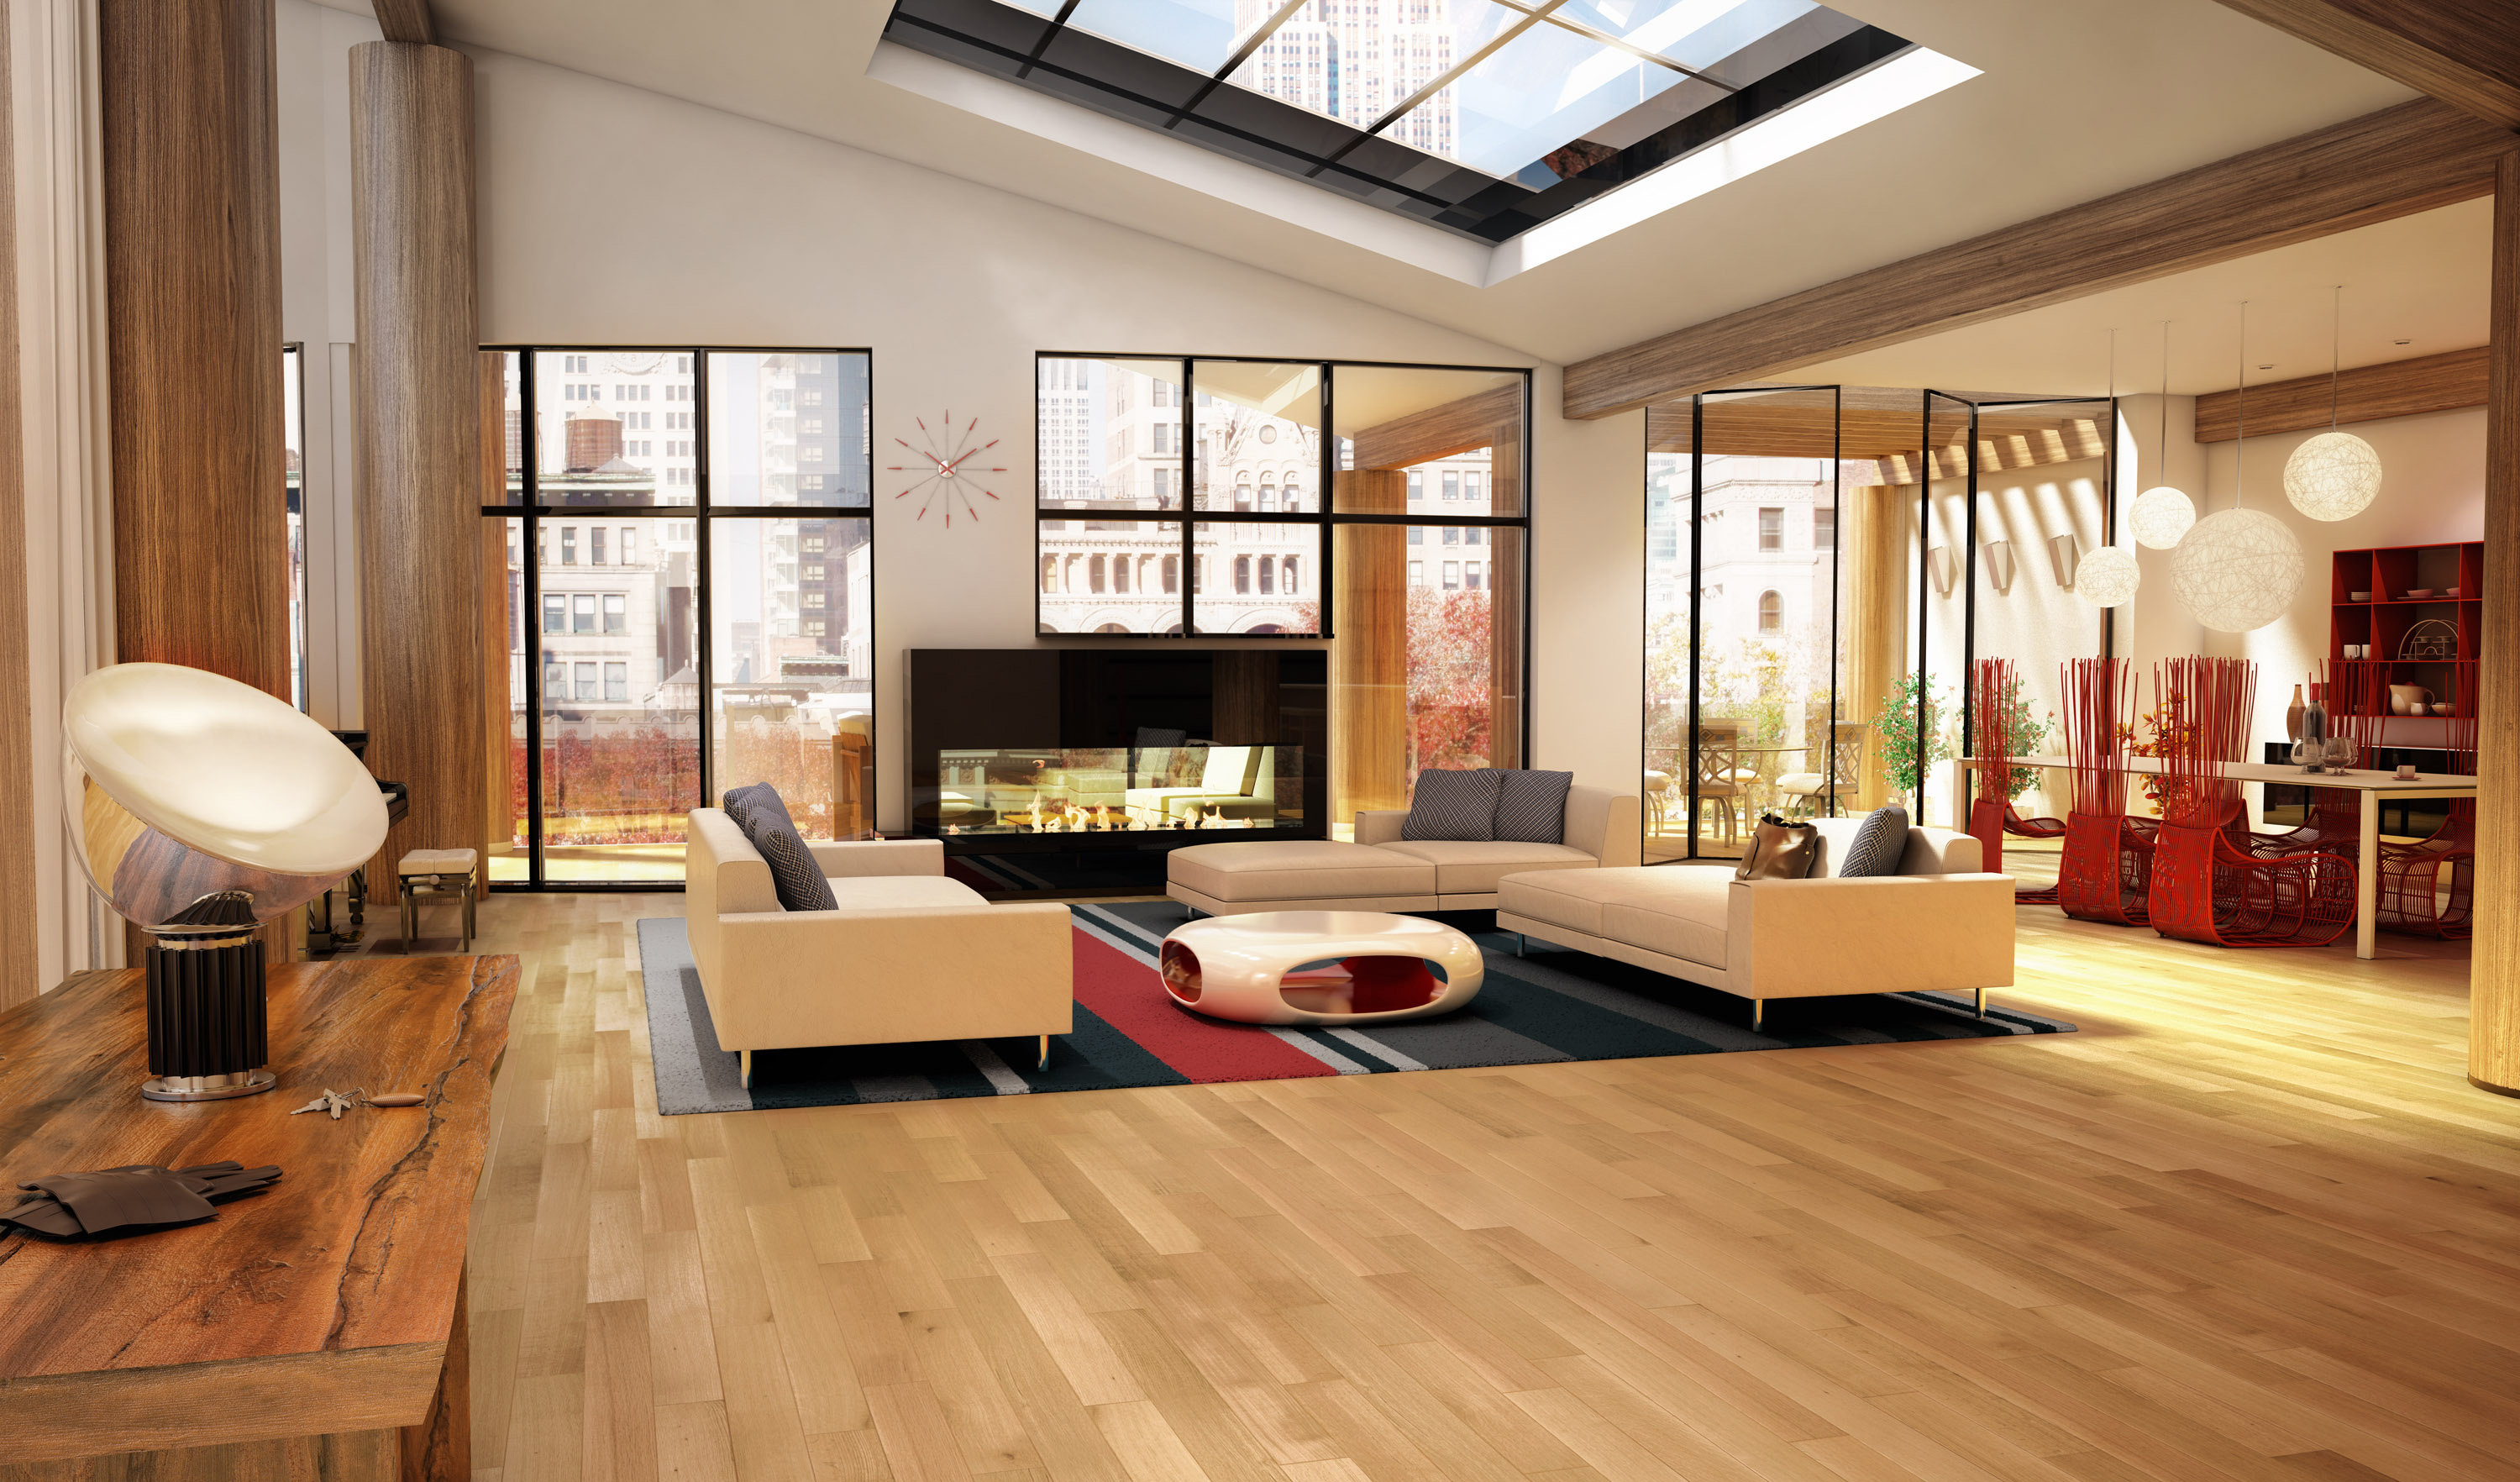 flooring ideas modern large velux skylights over white sectional sofas feat round coffee desk on black red rug feat white oak flooring in contemporary open views living room decors natural yet elegant